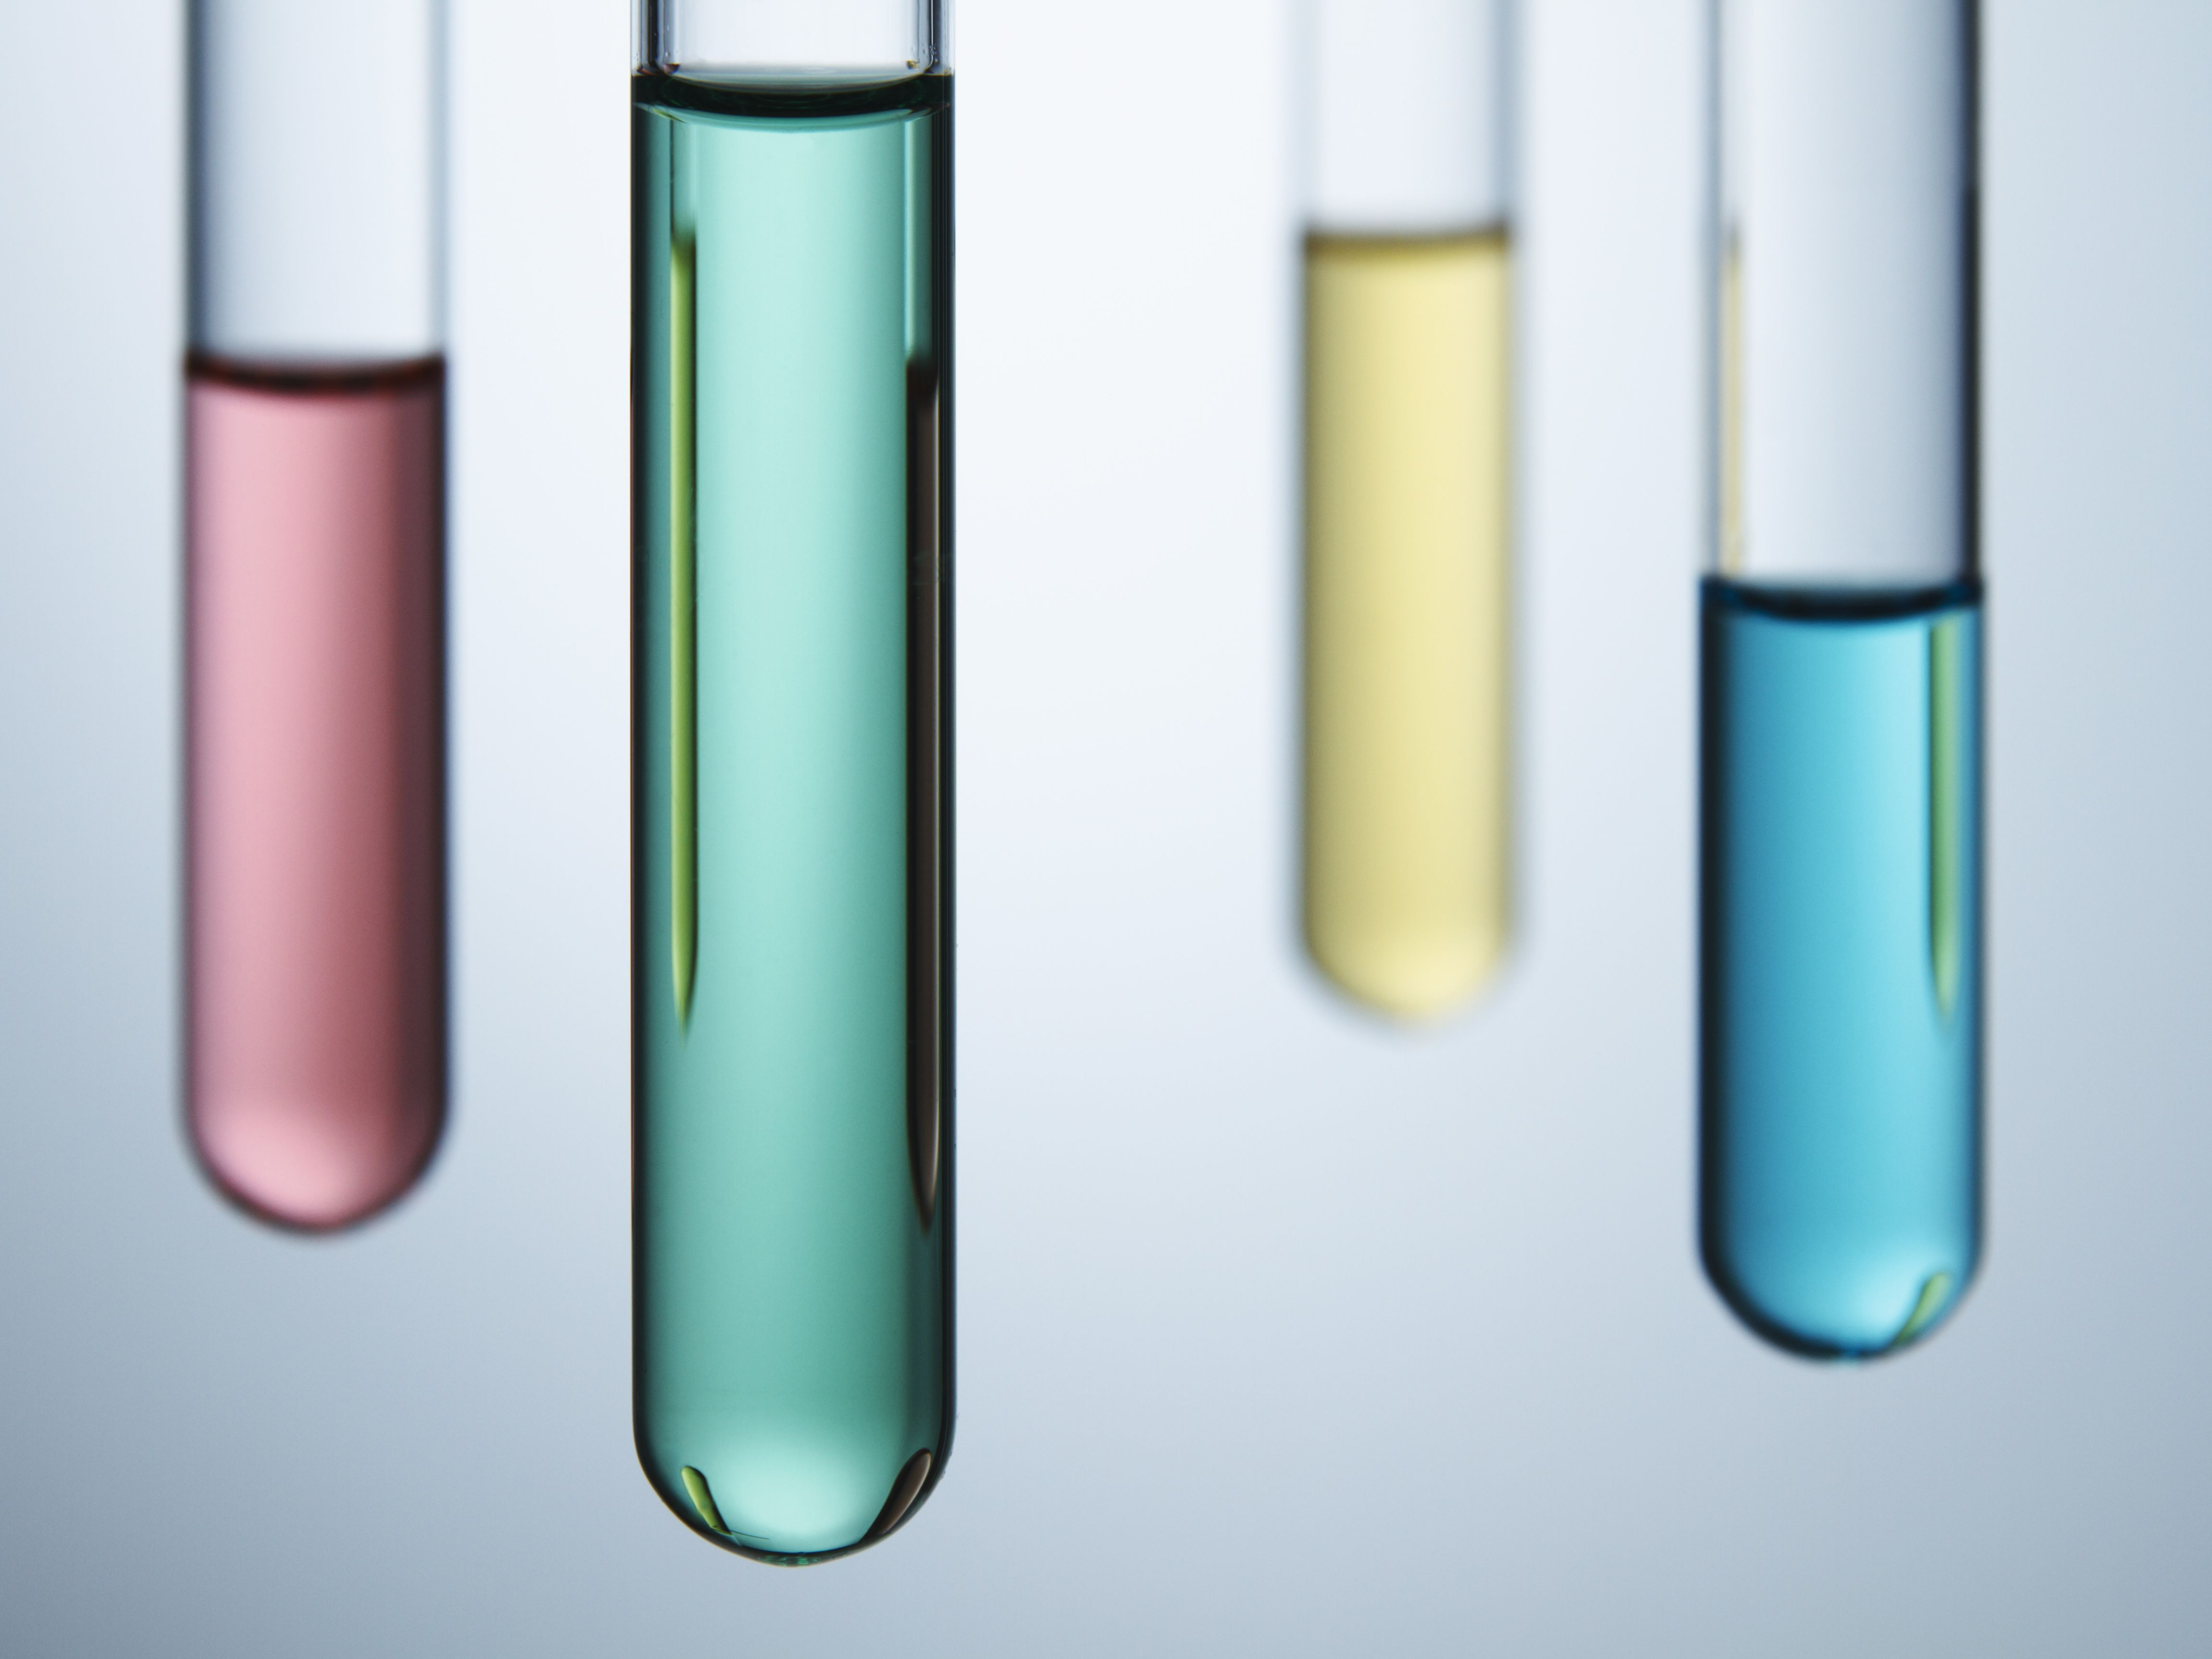 How to Find the Volume in a Test Tube